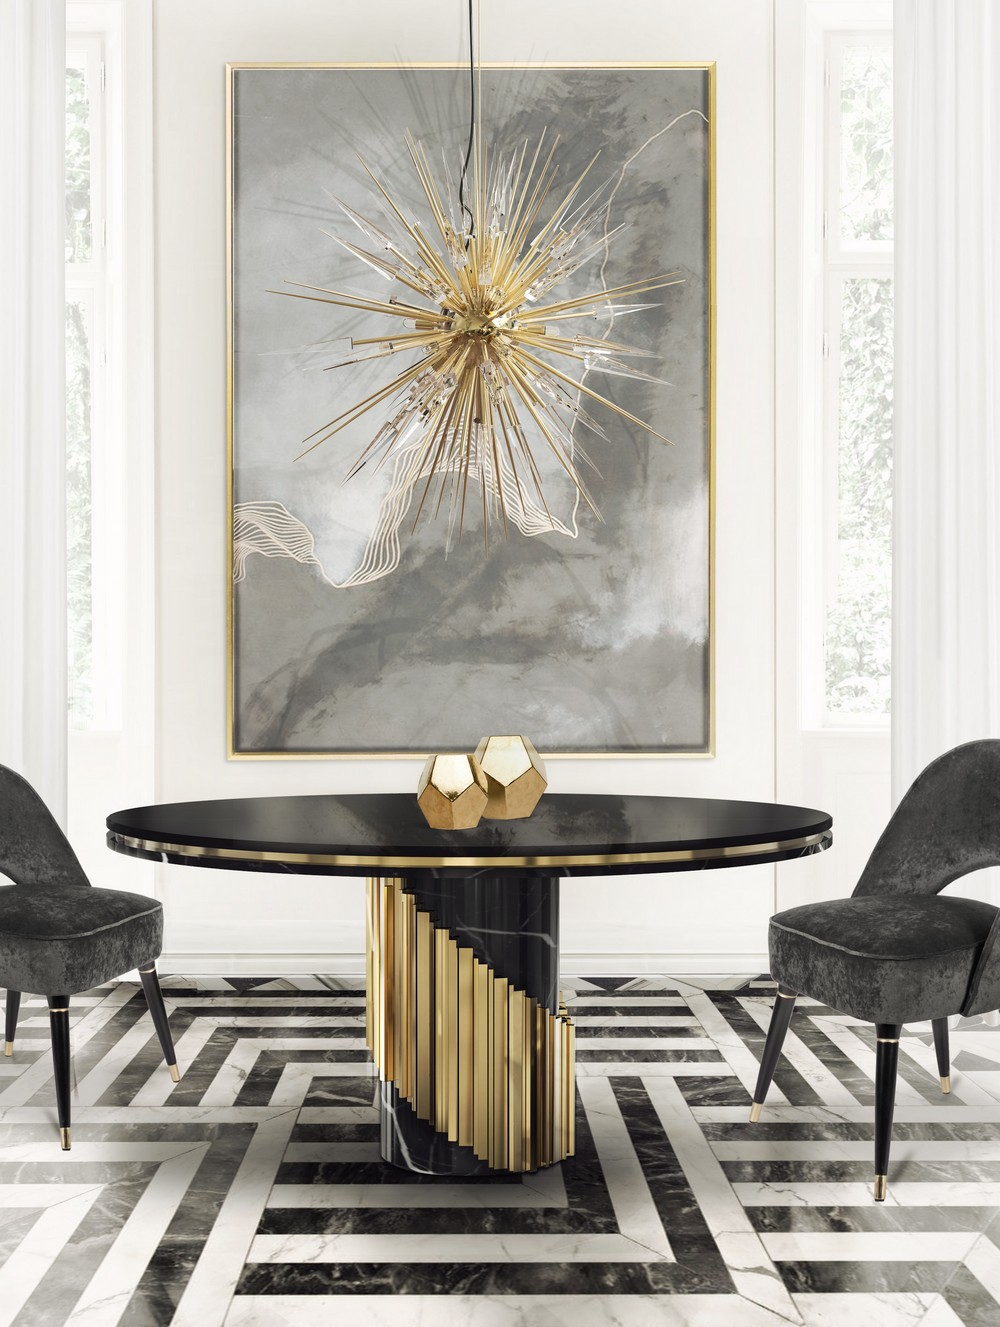 Dining Room Furniture You Can't Miss at Maison et Objet 2020 maison et objet 2020 Dining Room Furniture You Can't Miss at Maison et Objet 2020 littus